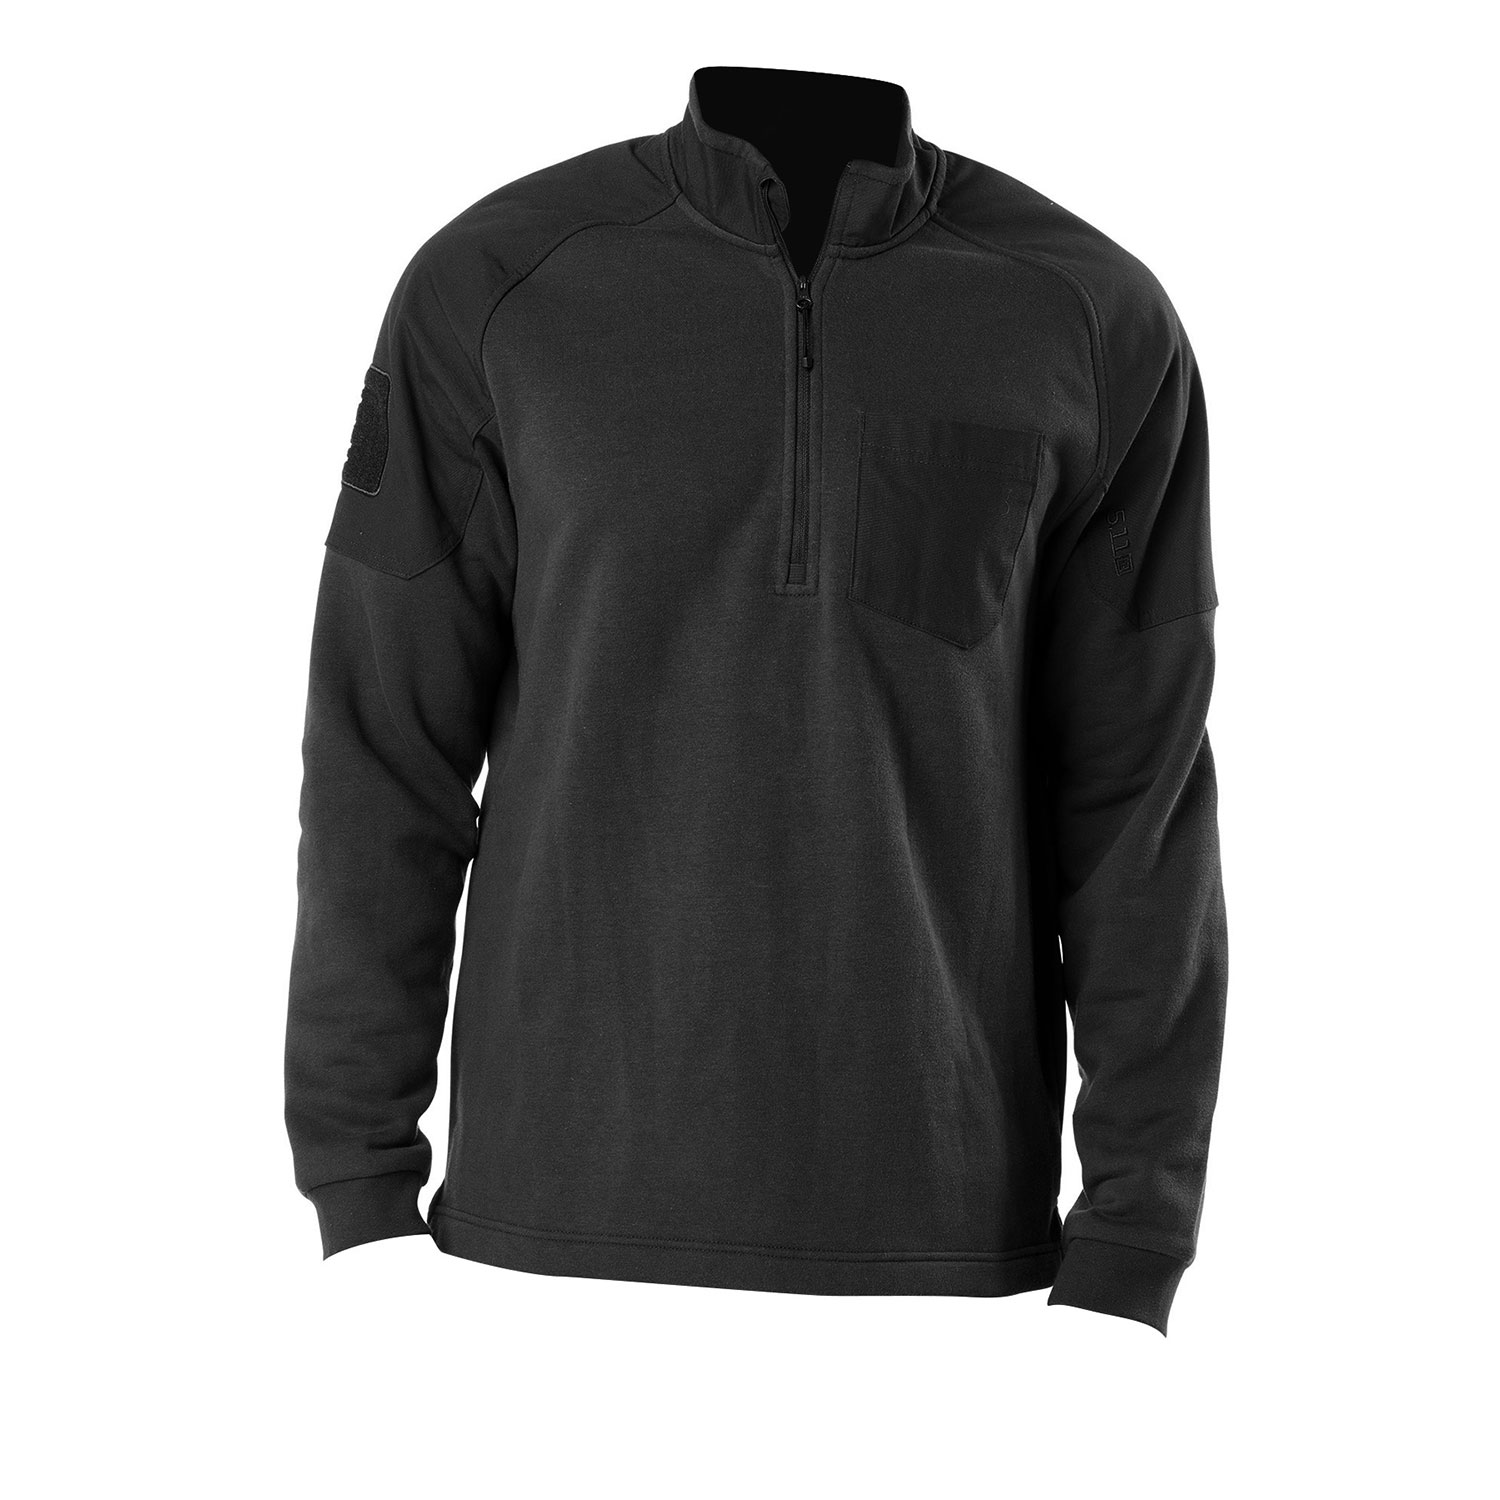 5.11 Radar Fleece Half Zip